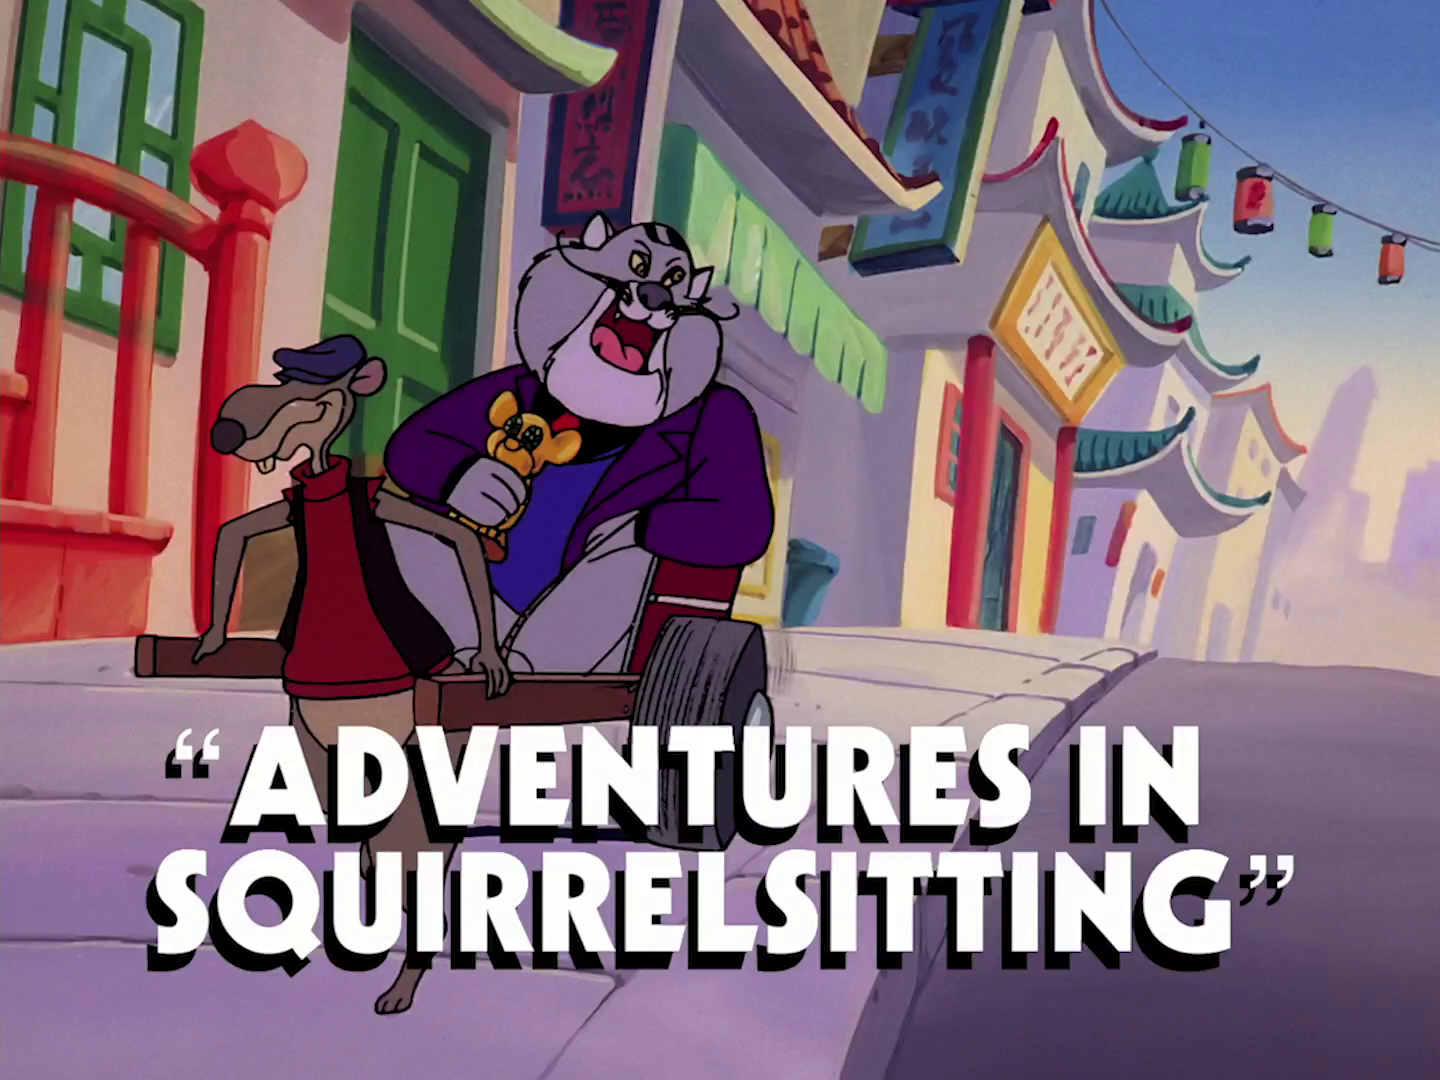 Adventures in Squirrelsitting